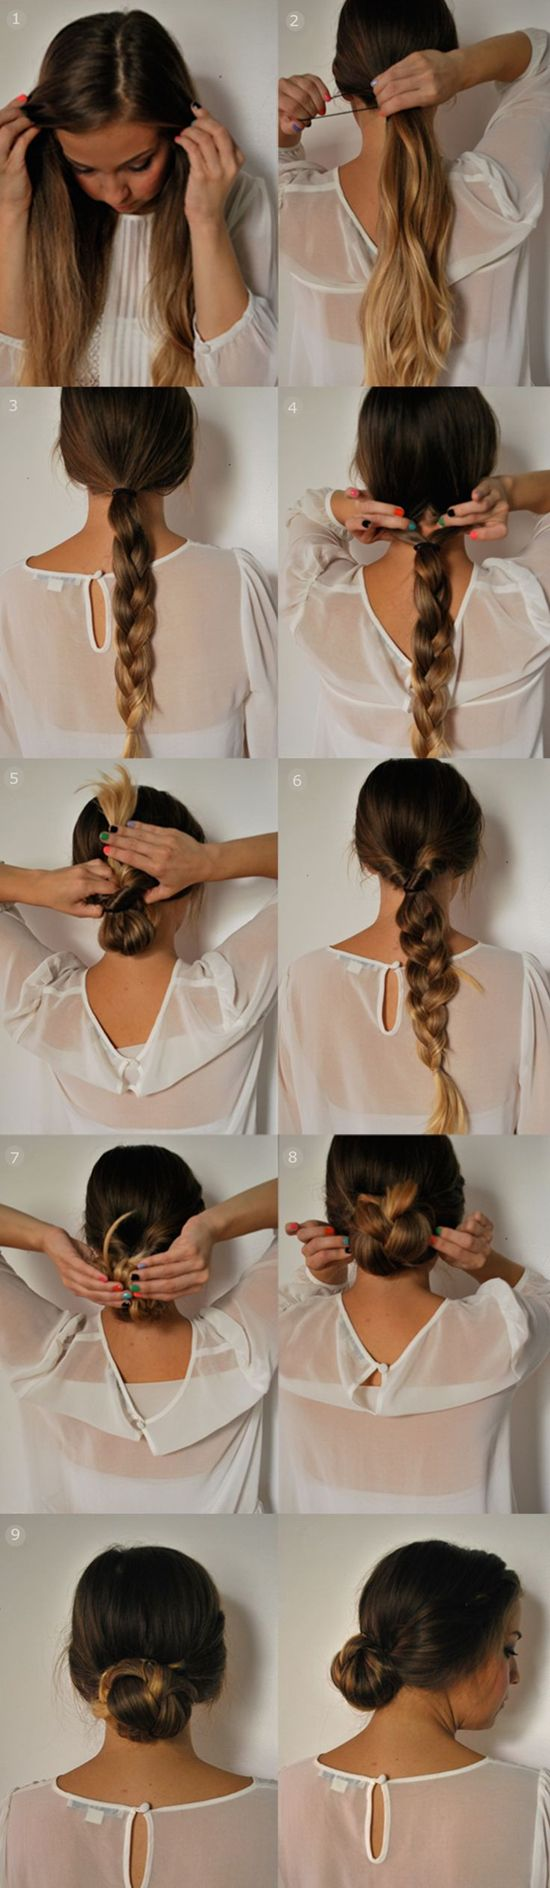 Quick 5 minutes updo braided ponytail updo